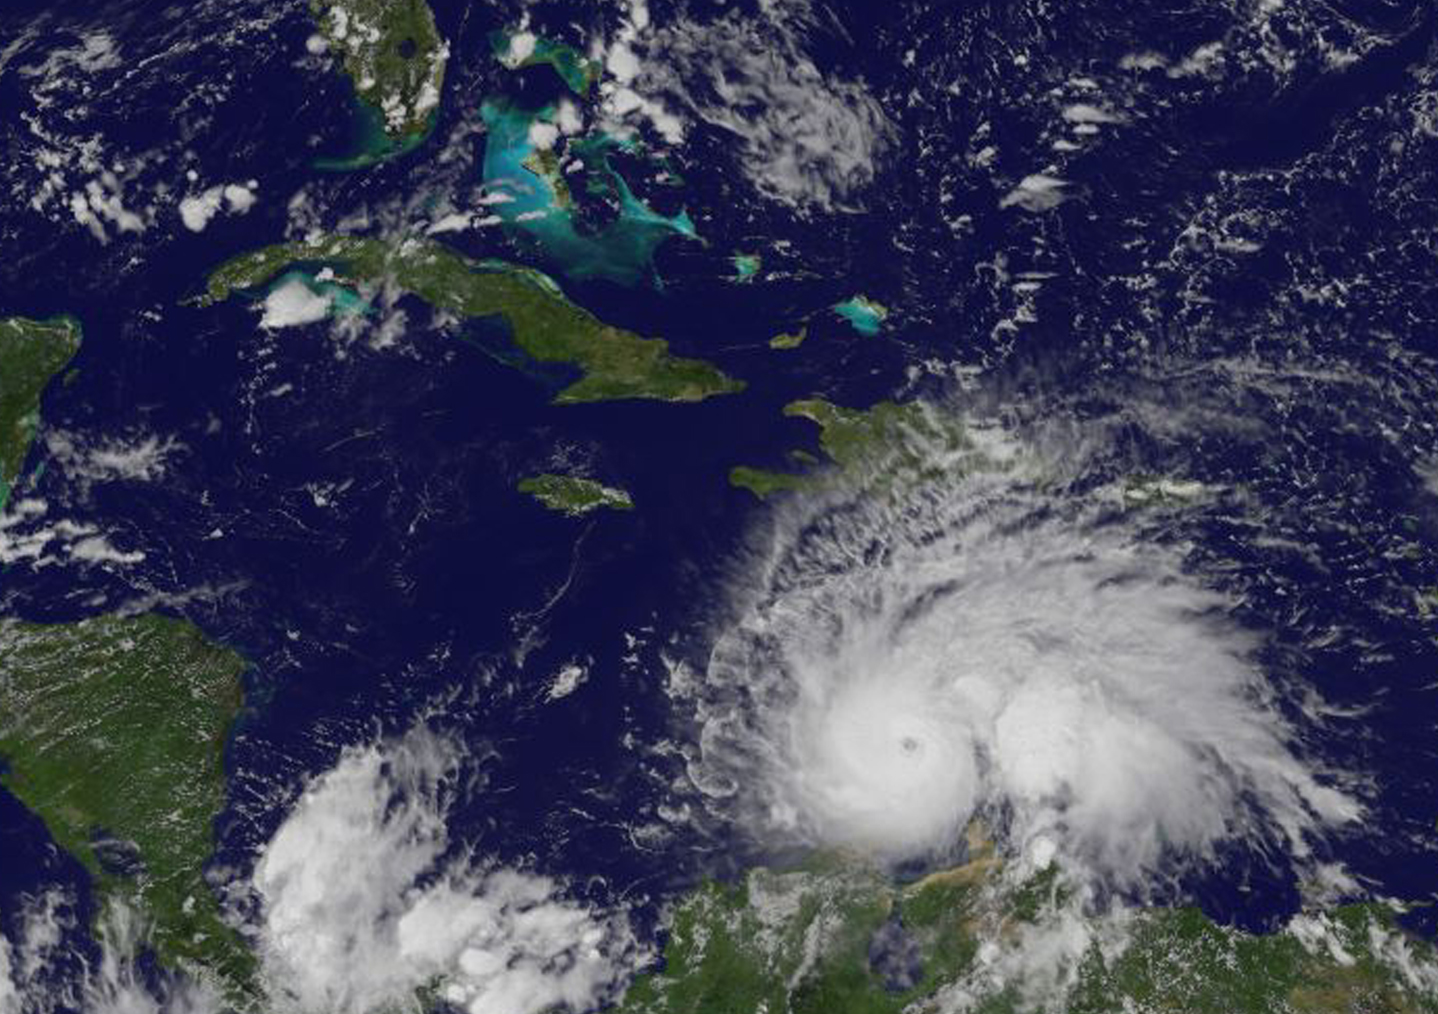 http://www.nasa.gov/sites/default/files/thumbnails/image/matthew-goes-93016.jpg